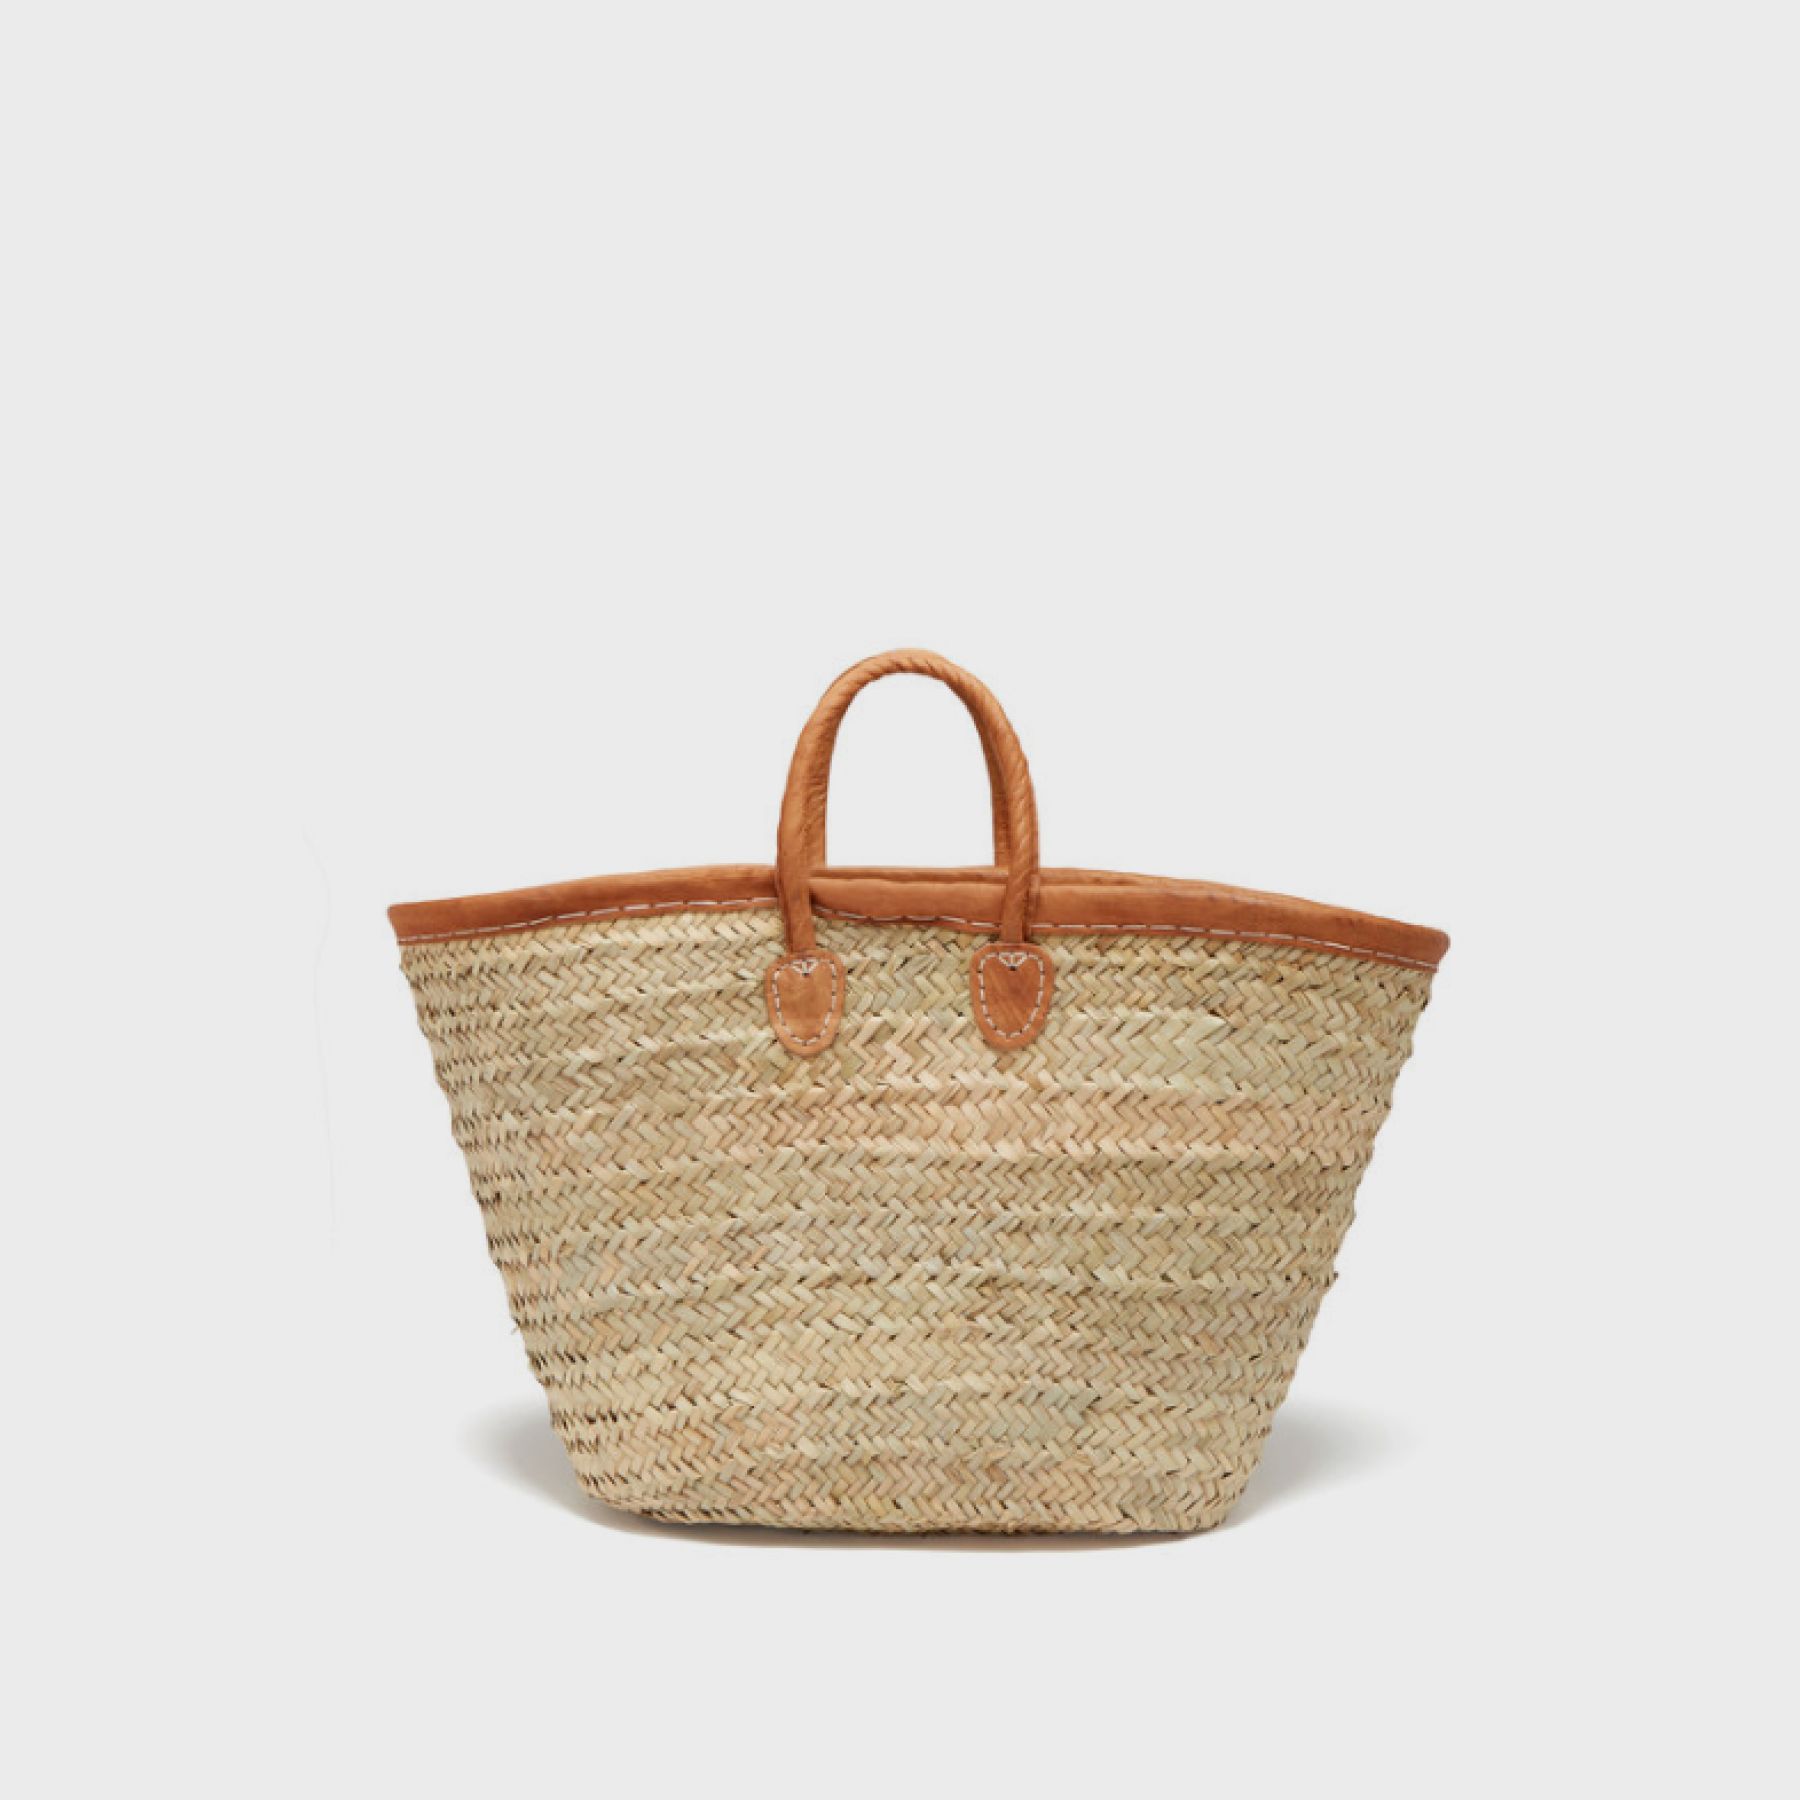 ALL-SORTS-OF-MEDINA-MERCANTILE-WOVEN-BAG